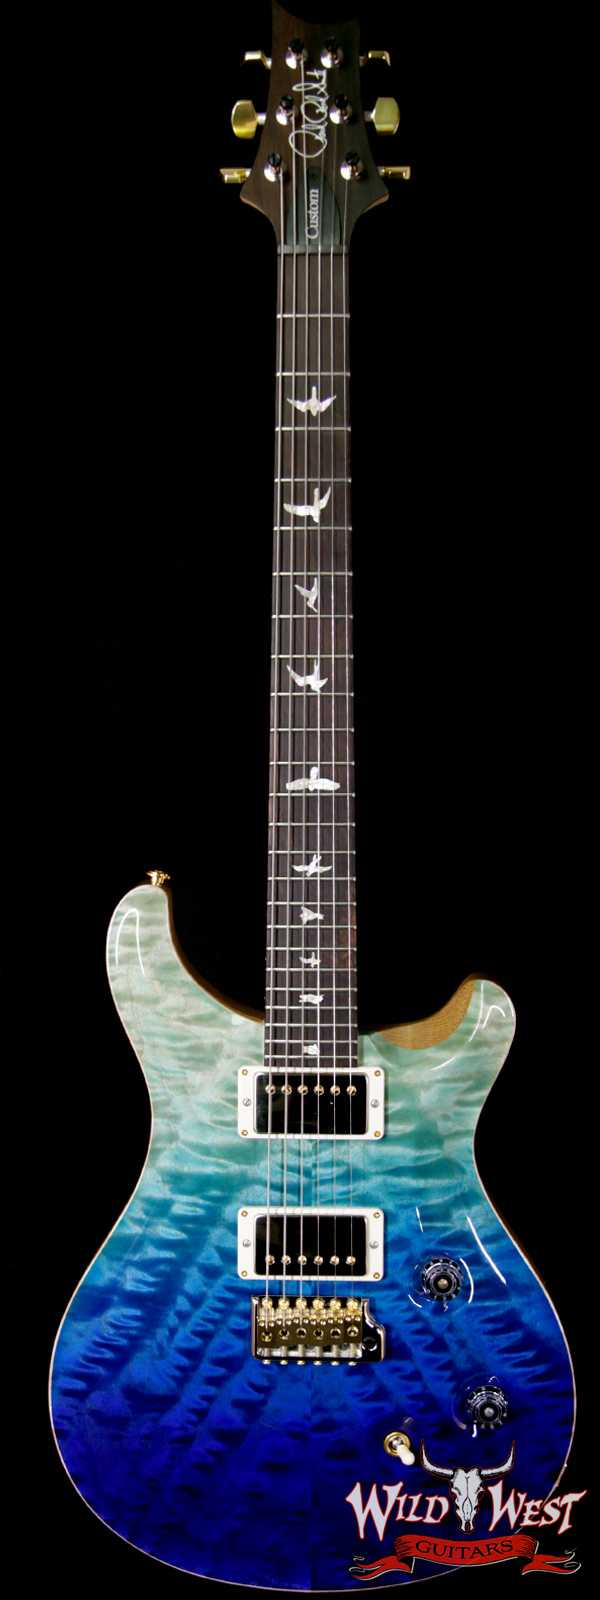 PRS Wood Library 10 Top Custom 24 Fatback Quilt Top Flame Neck Korina Brazilian Rosewood Board Blue Fade